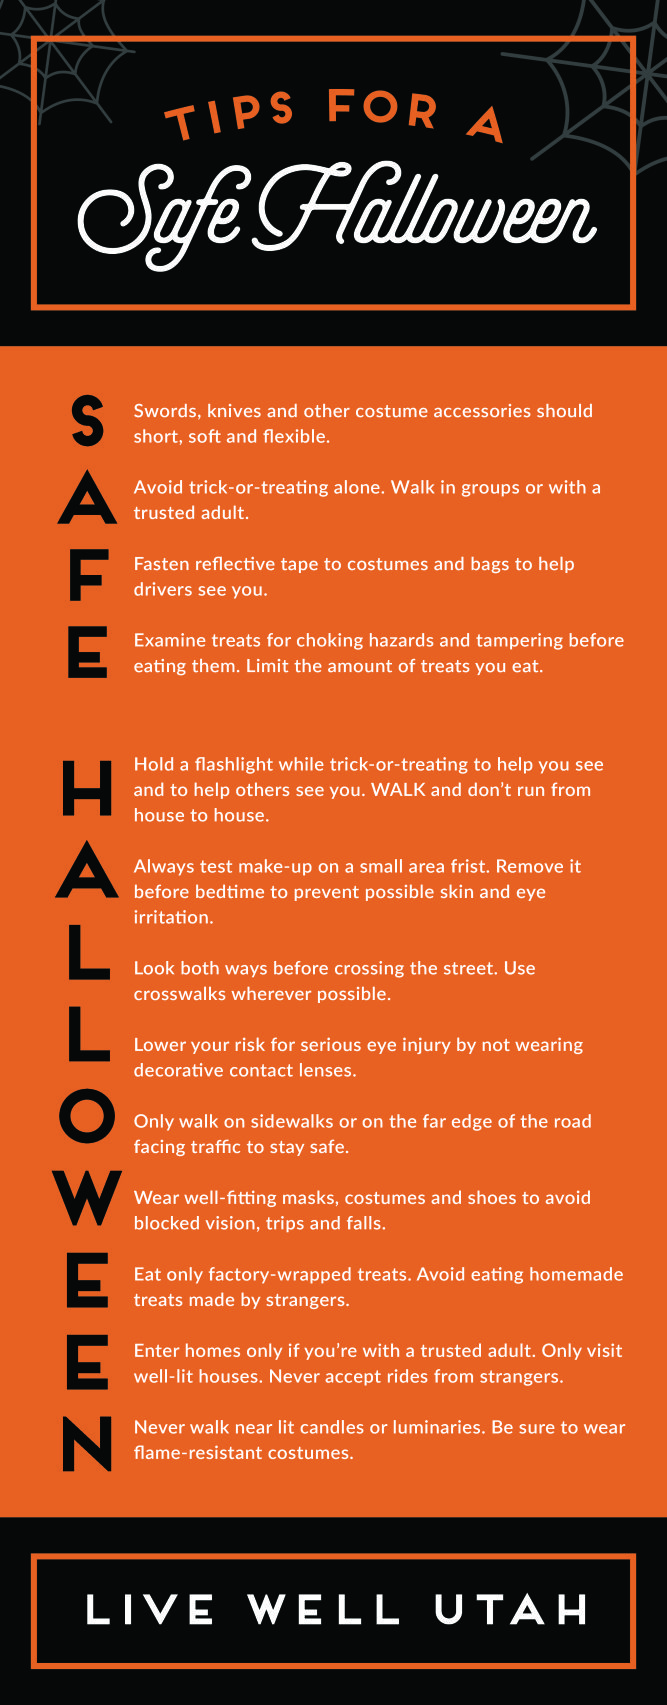 Tips for a Safe Halloween Halloween safety tips, Tips